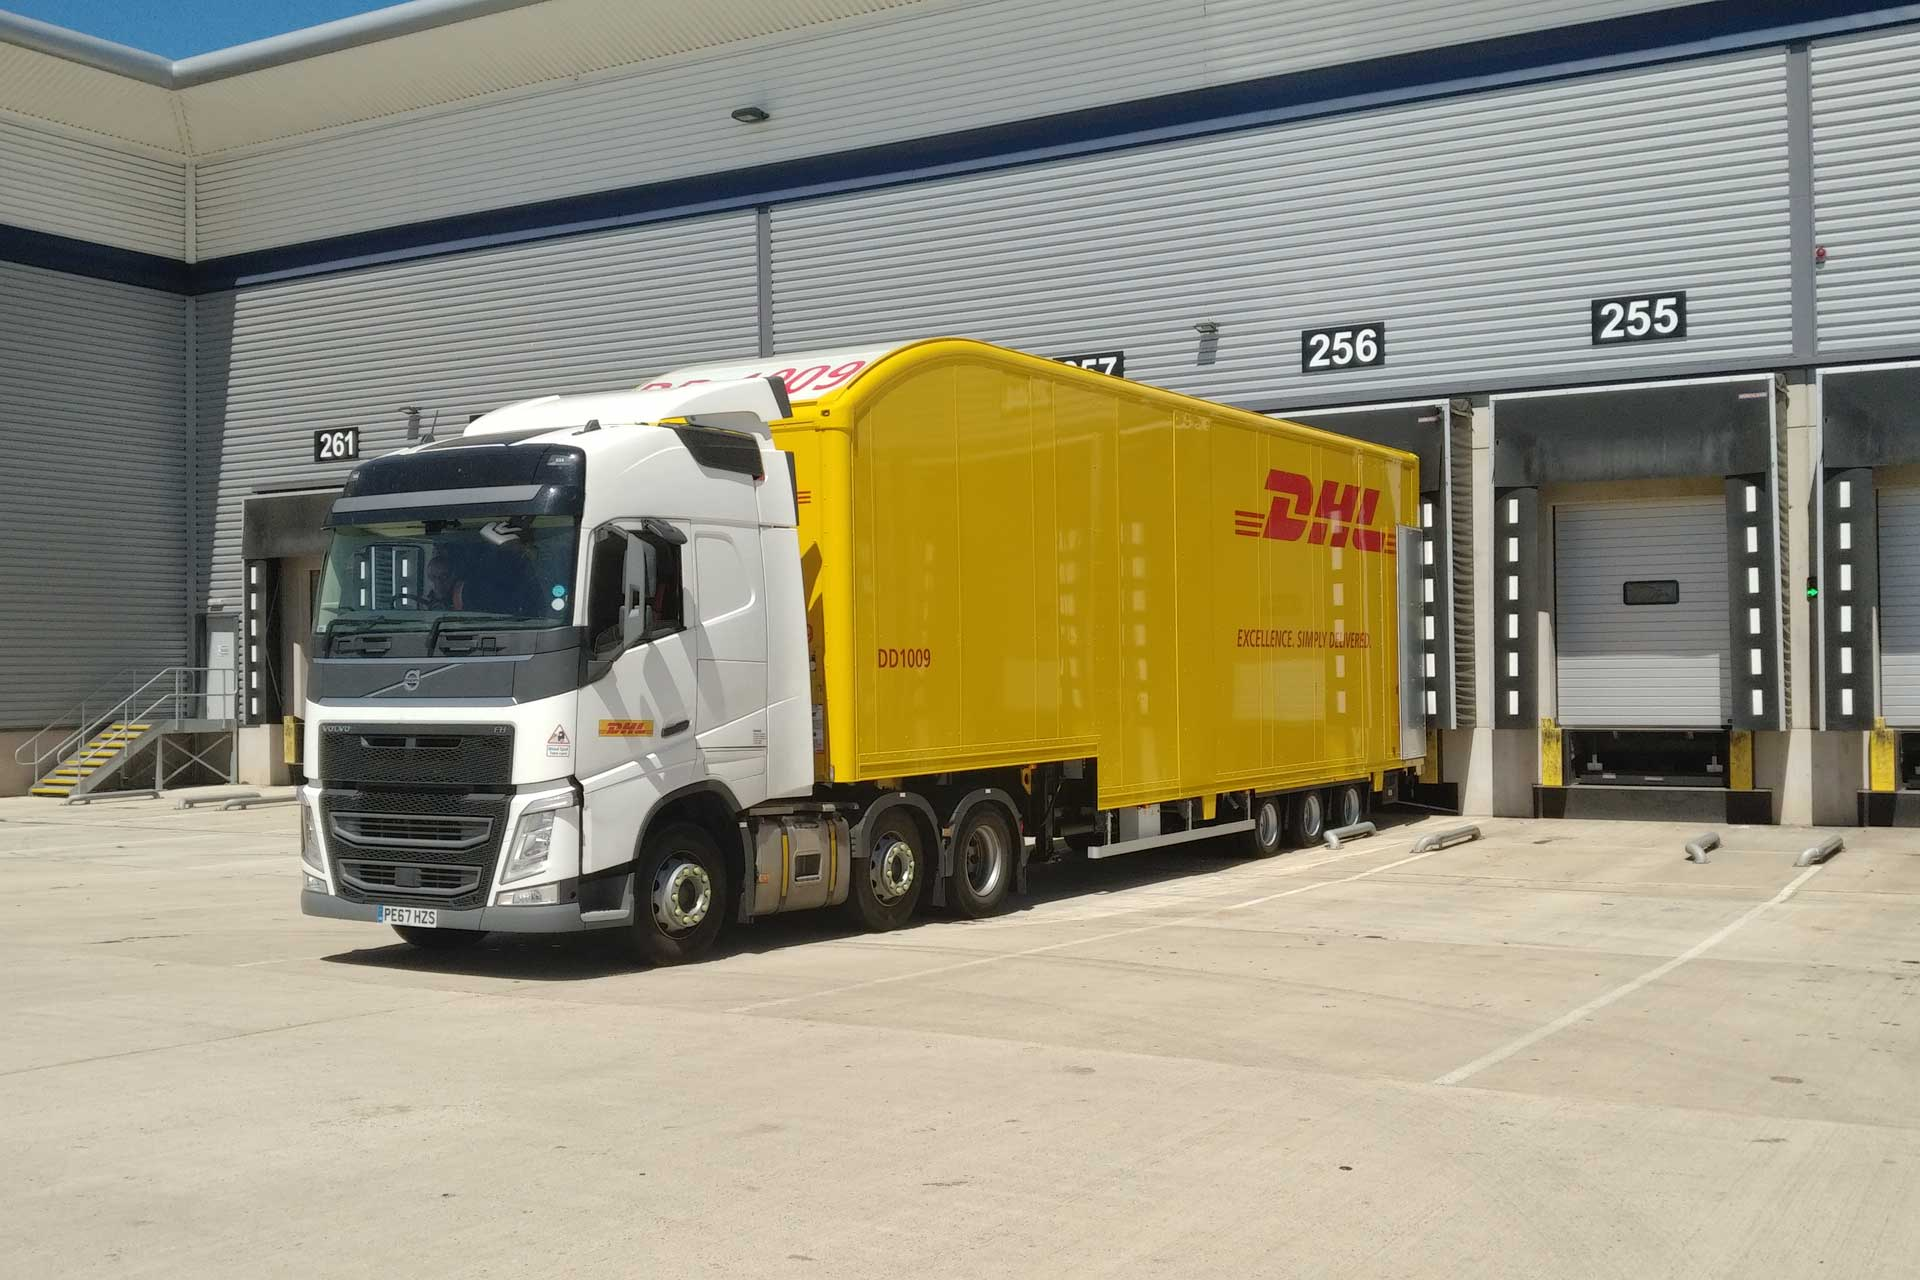 DHL Parcel invests in fleet to increase capacity, reduce carbon emissions and improve safety